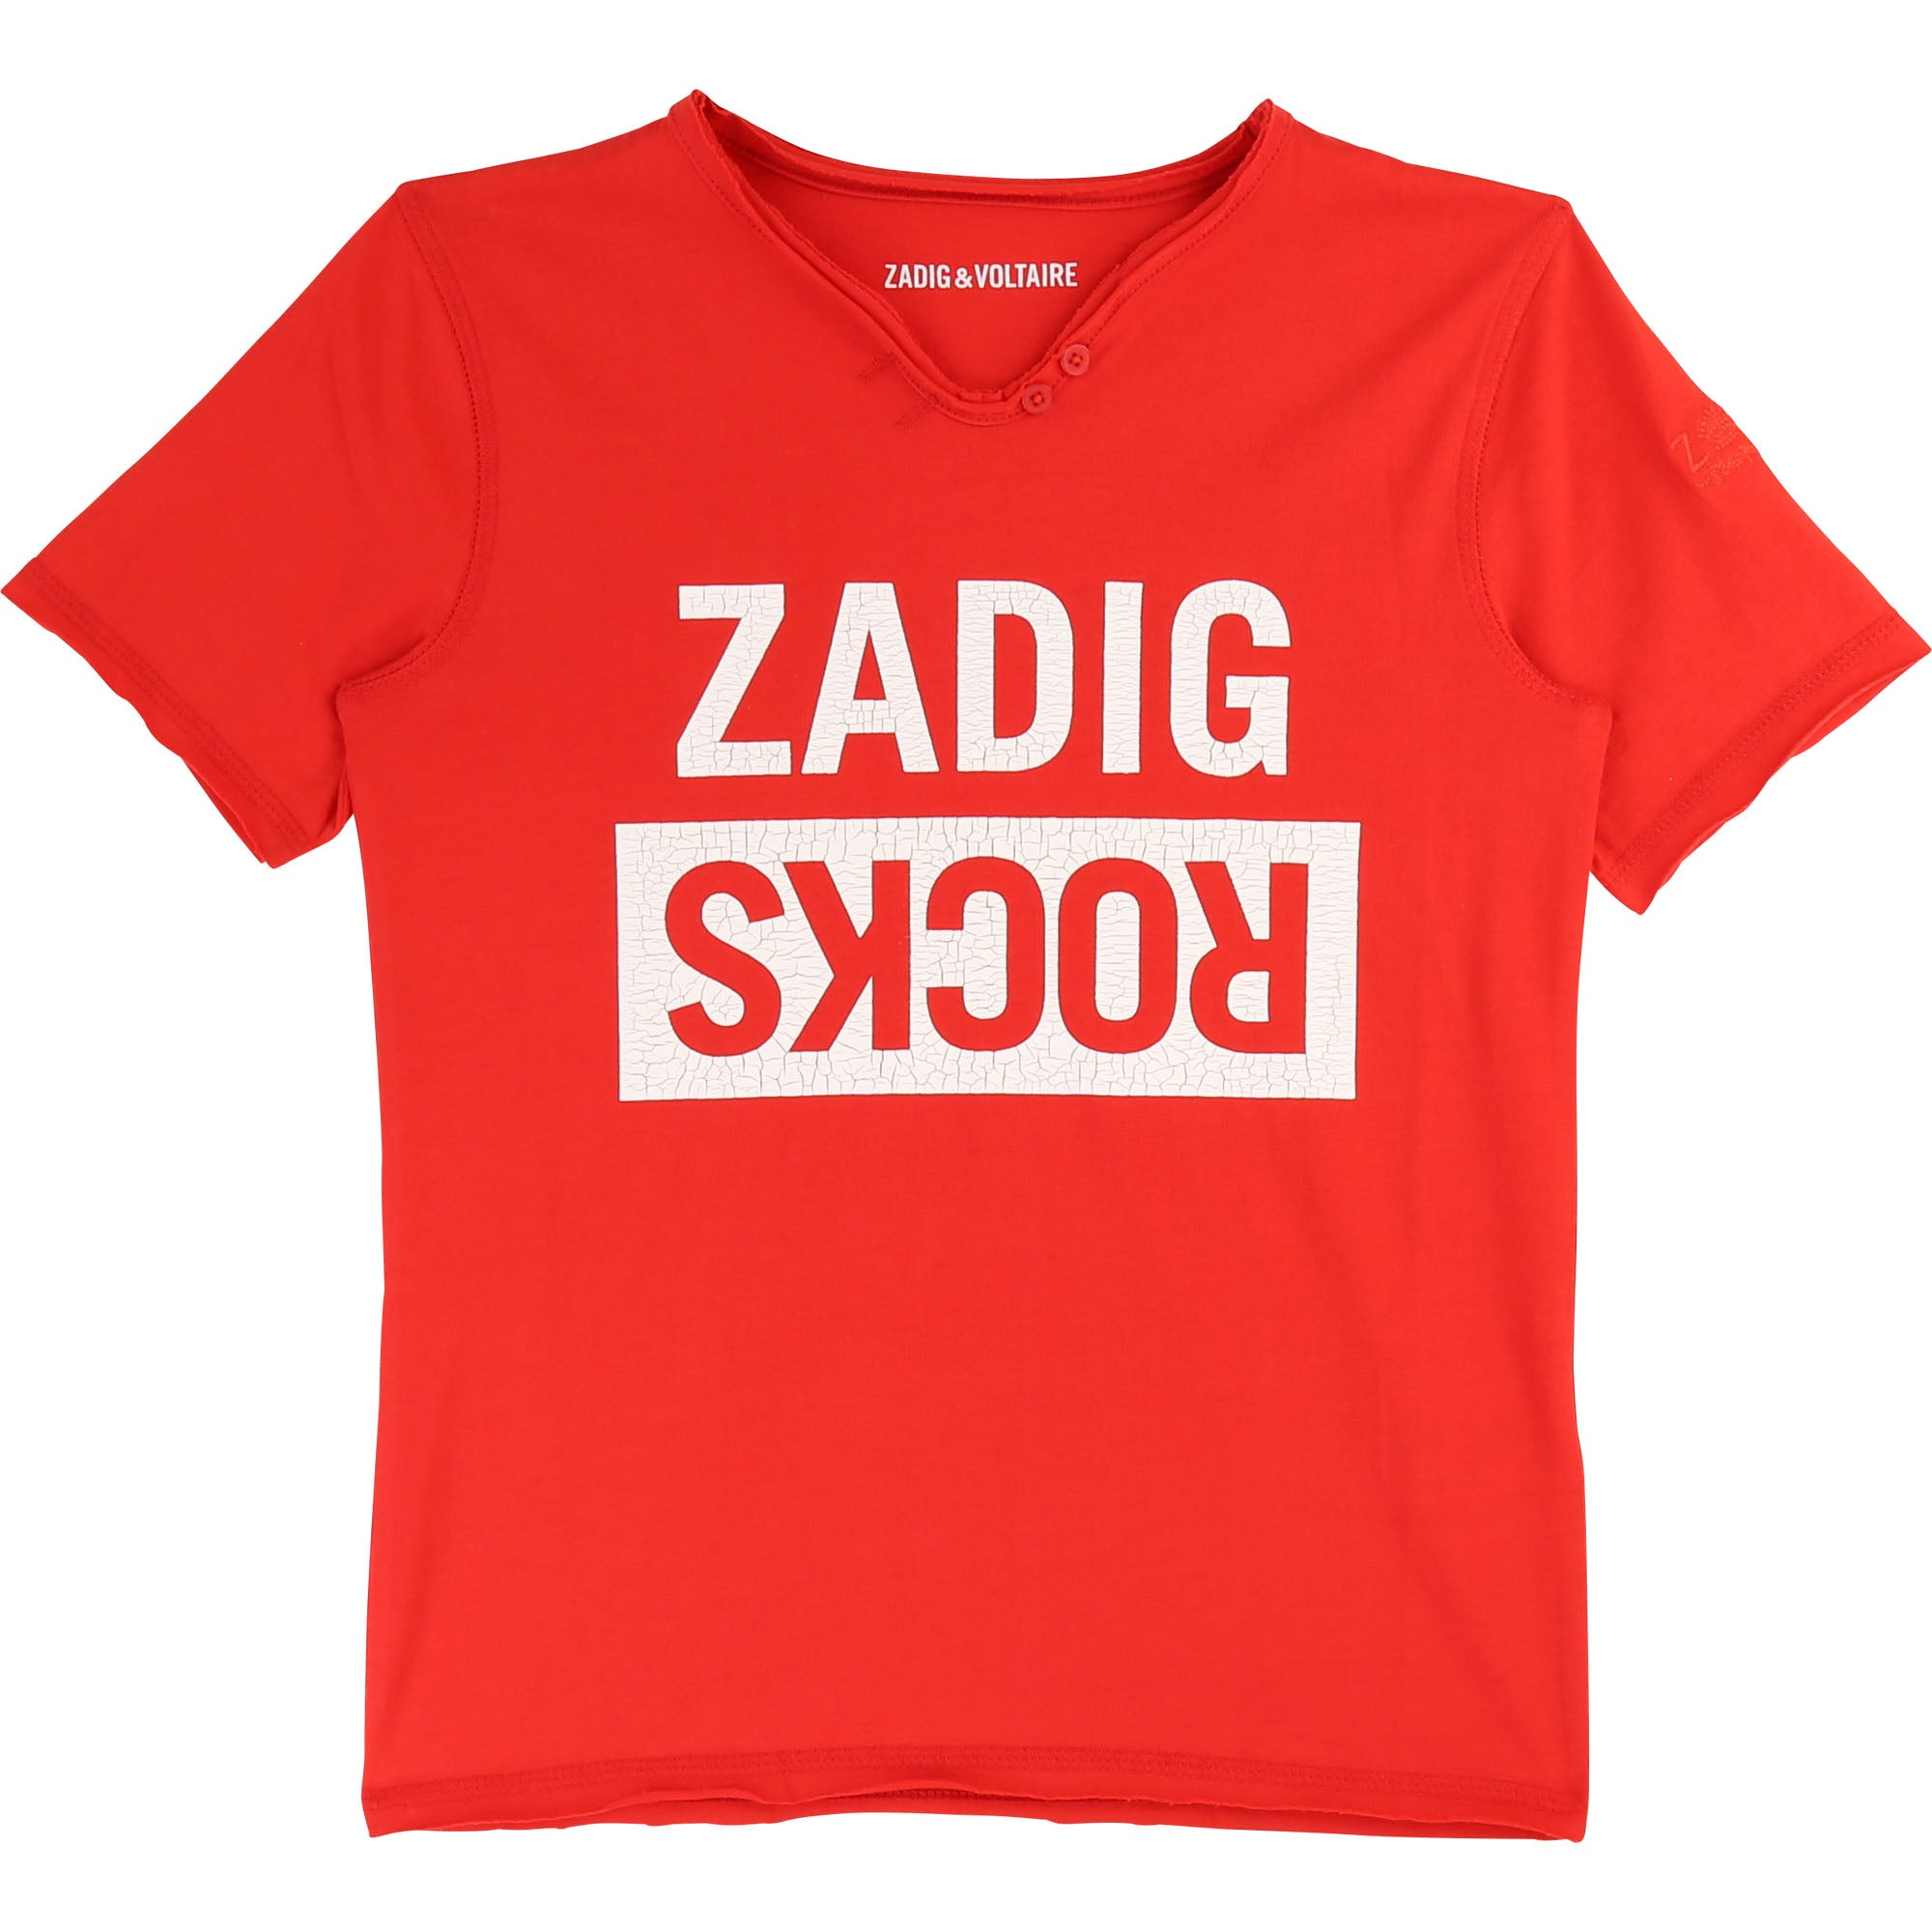 Boys Red Cotton T-Shirt